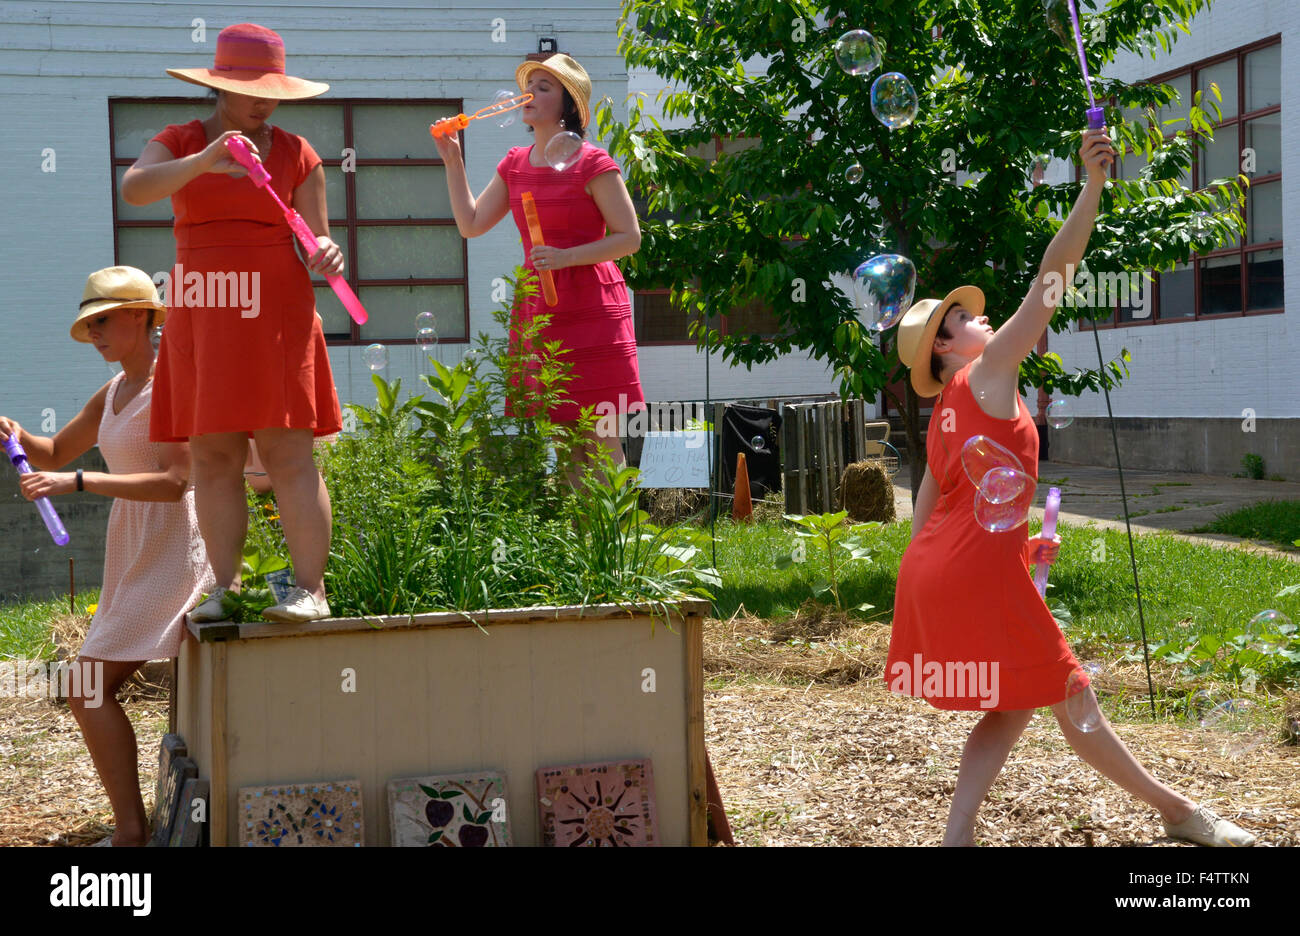 Street entertainers in Greenbelt, Maryland - Stock Image